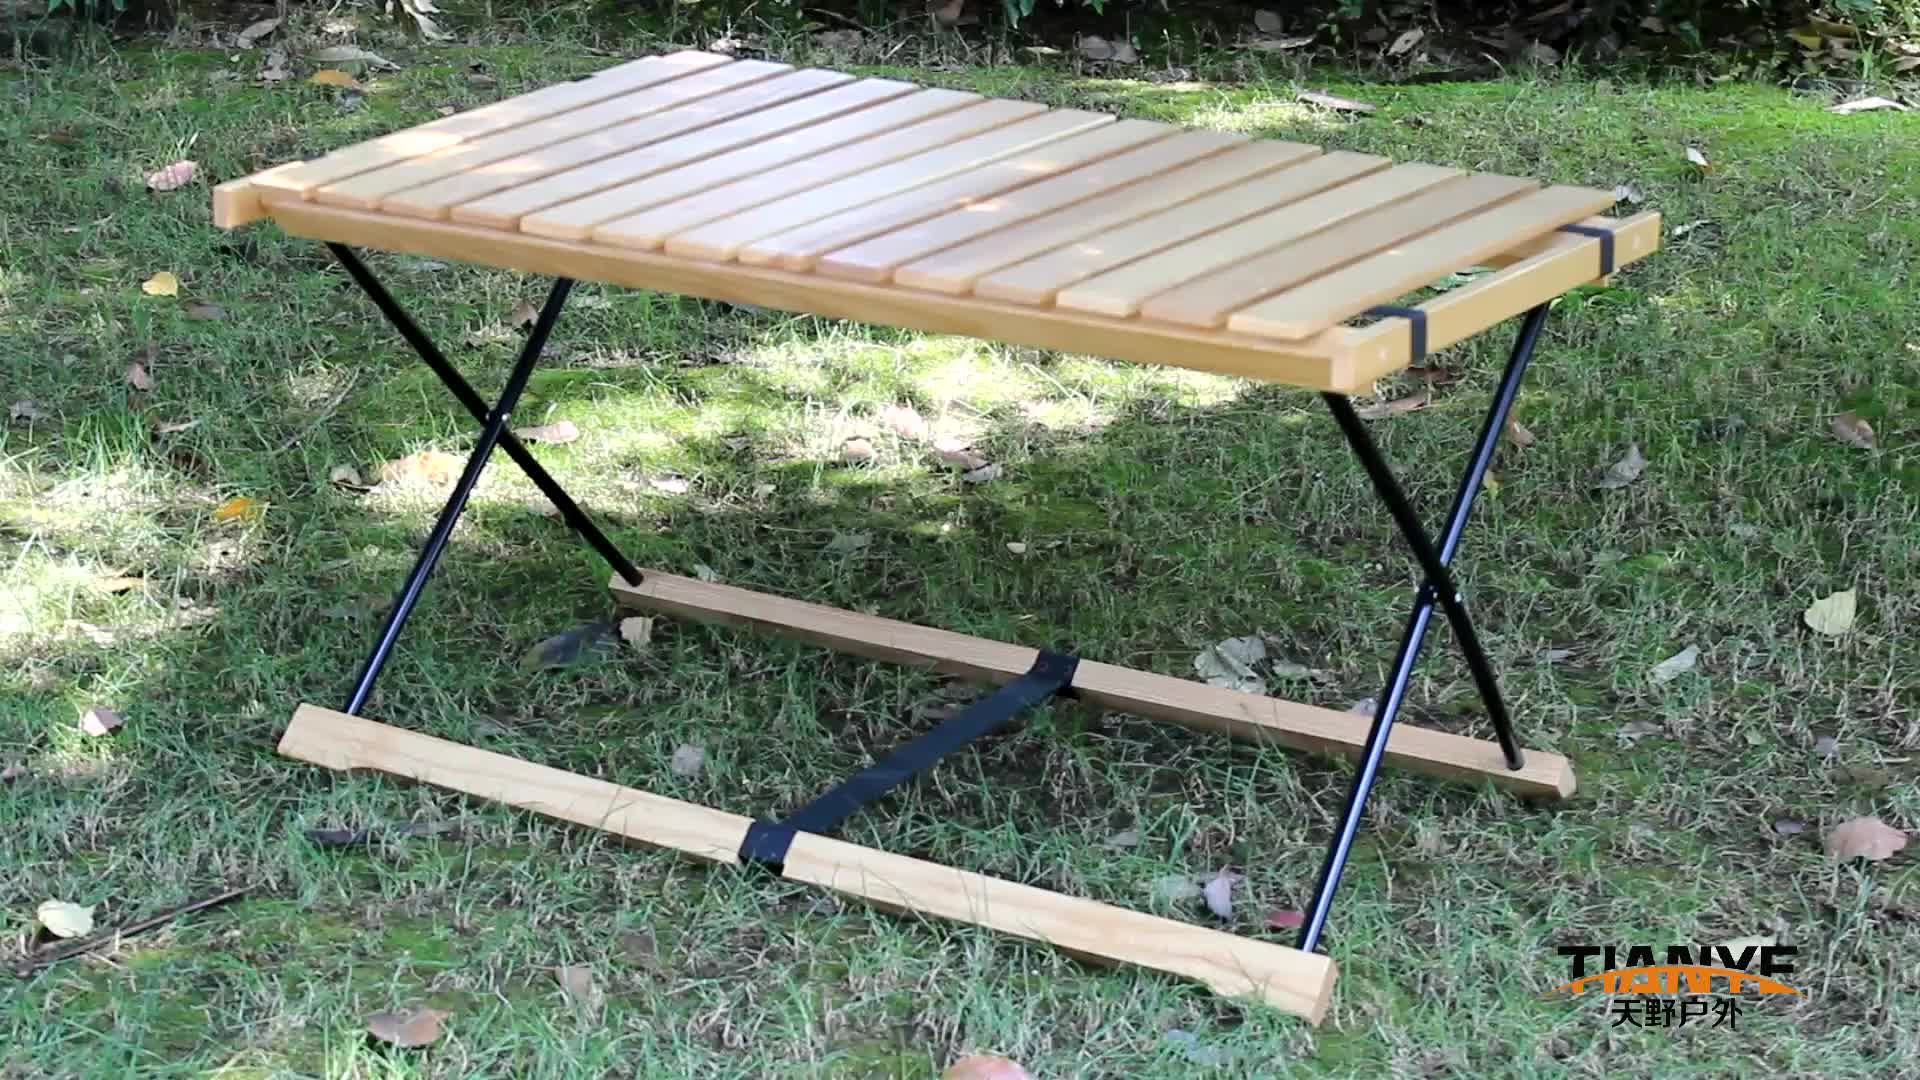 Tianye nice wood slat roll up foldable wooden picnic table  compact lawn camping table